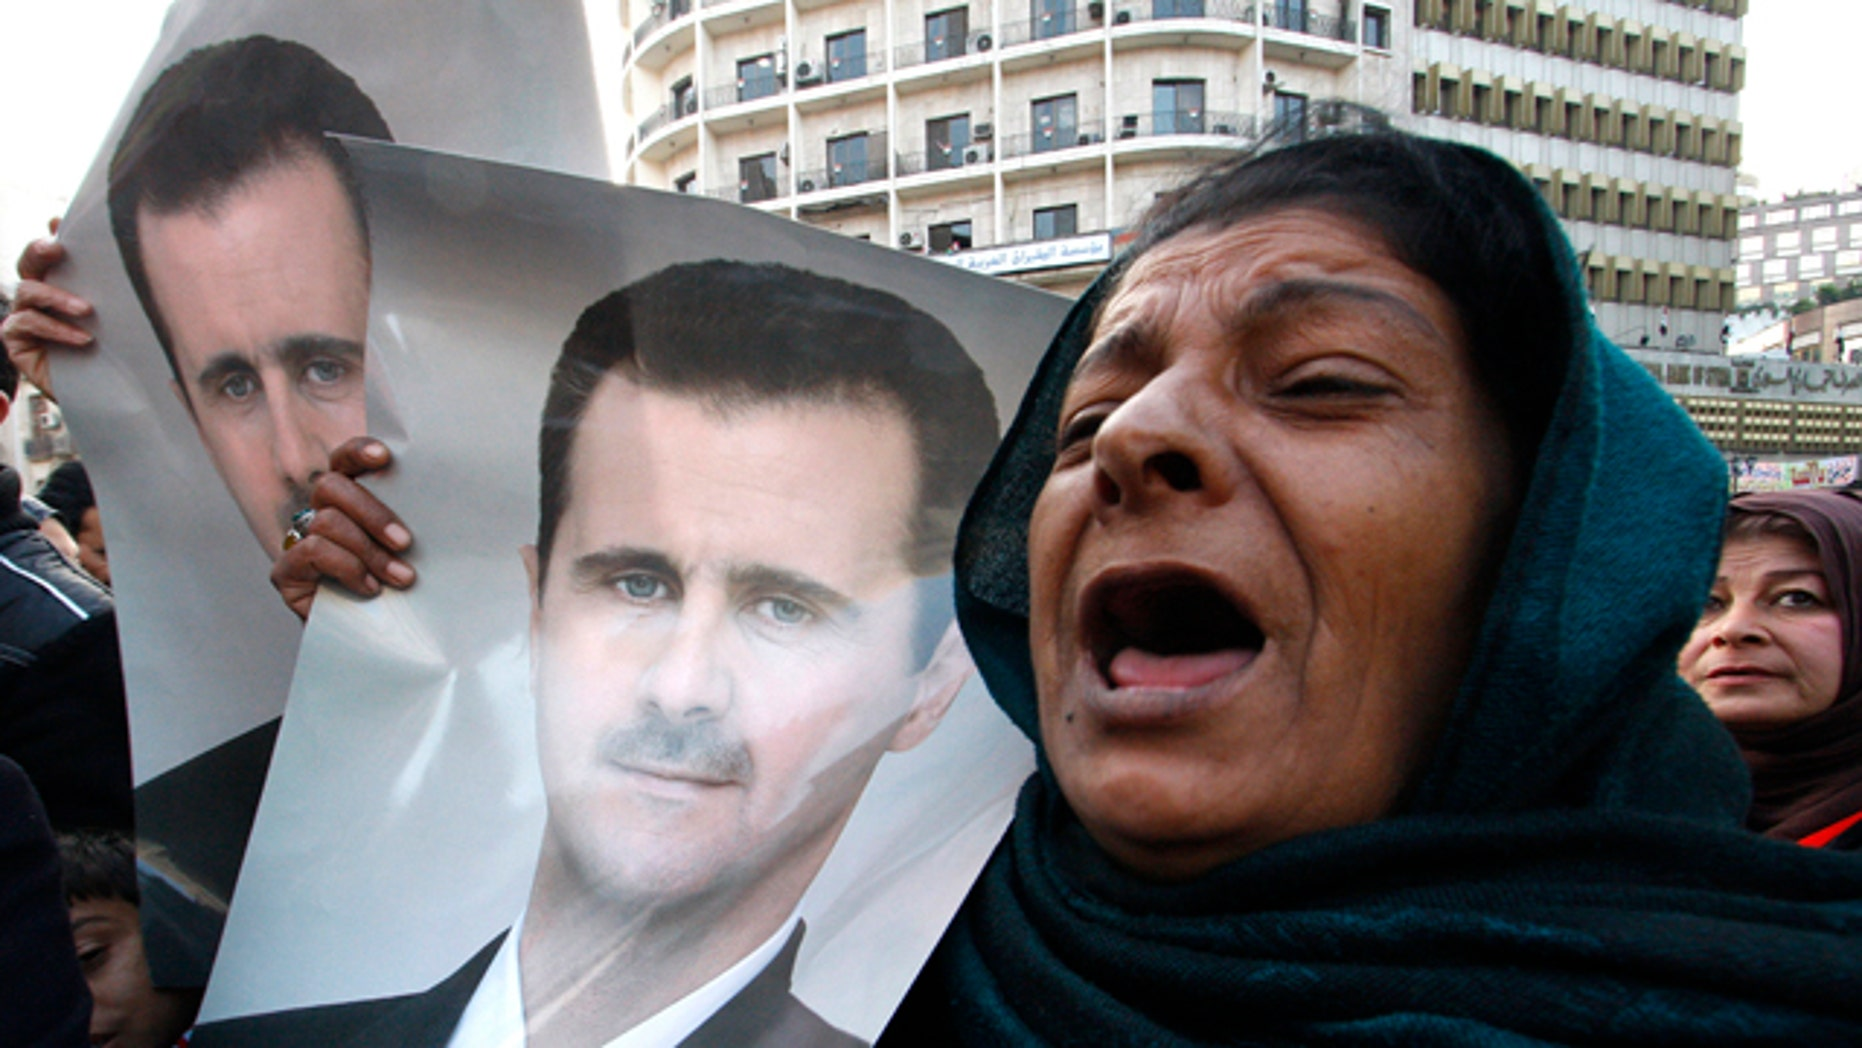 Wed. Jan 25, 2012: Pro-Syrian regime protesters, shout slogans and holds portrait of Syrian President Bashar Assad during a demonstration to show their solidarity for their president, in Damascus, Syria. Government forces clashed with army defectors and stormed rebellious districts in central Syria on Wednesday, firing mortars and deploying snipers in violence that killed at least seven people, including a mother and her 5-year-old child, activists said. (AP Photo)